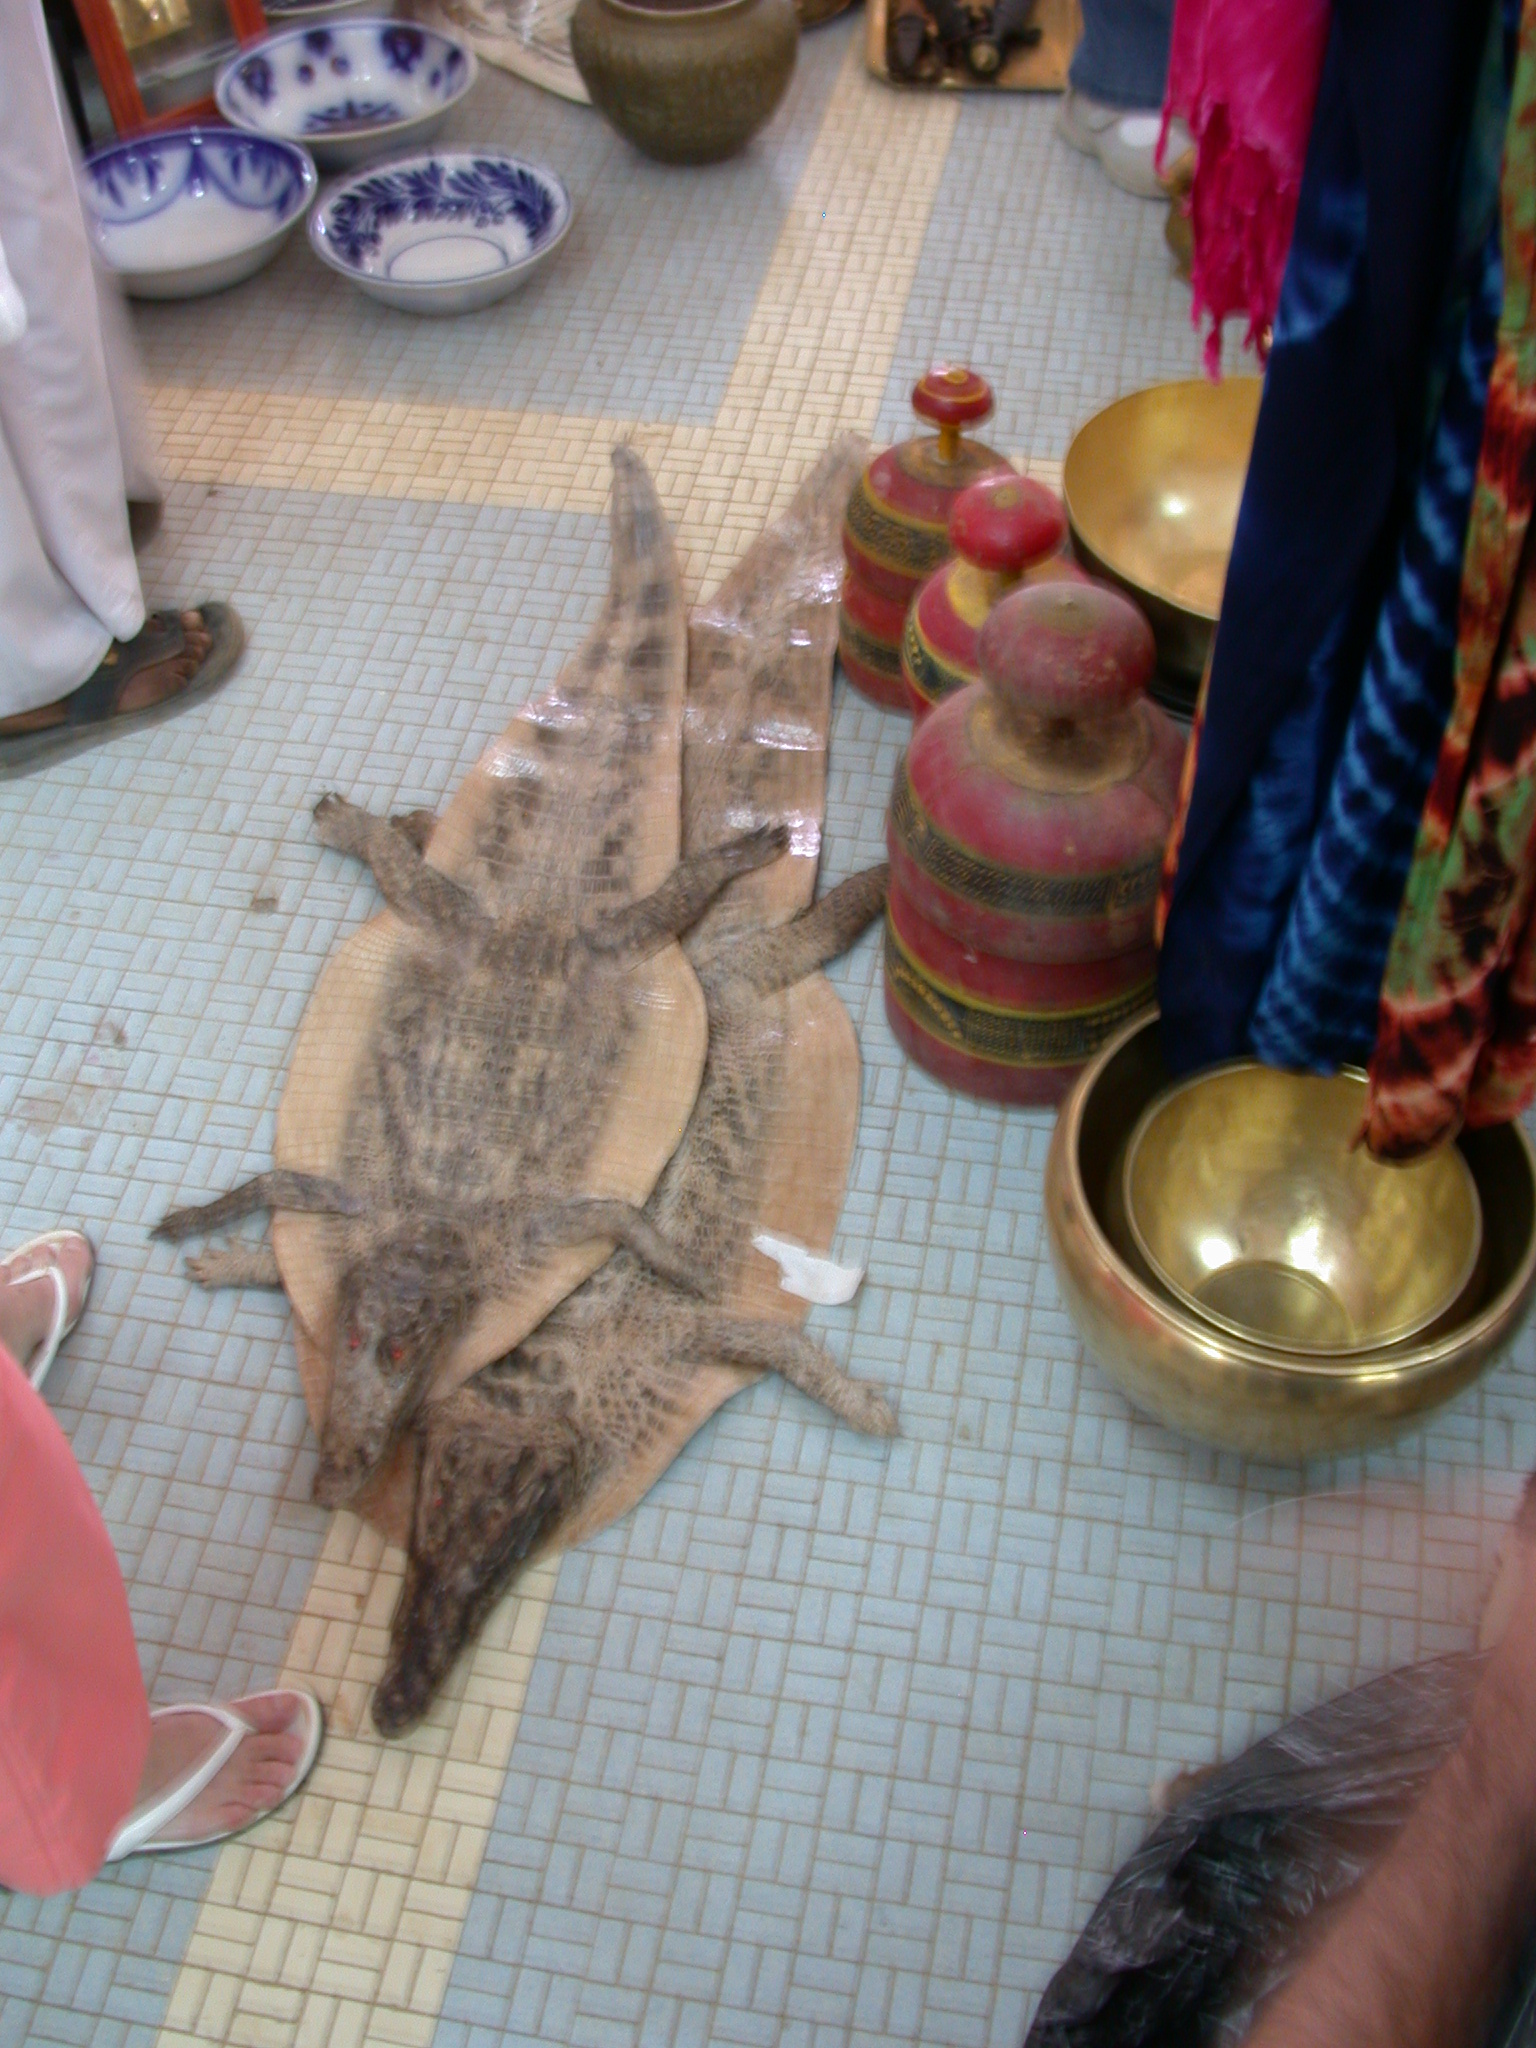 Crocodile Skins, International Charity Fair, Khartoum, Sudan